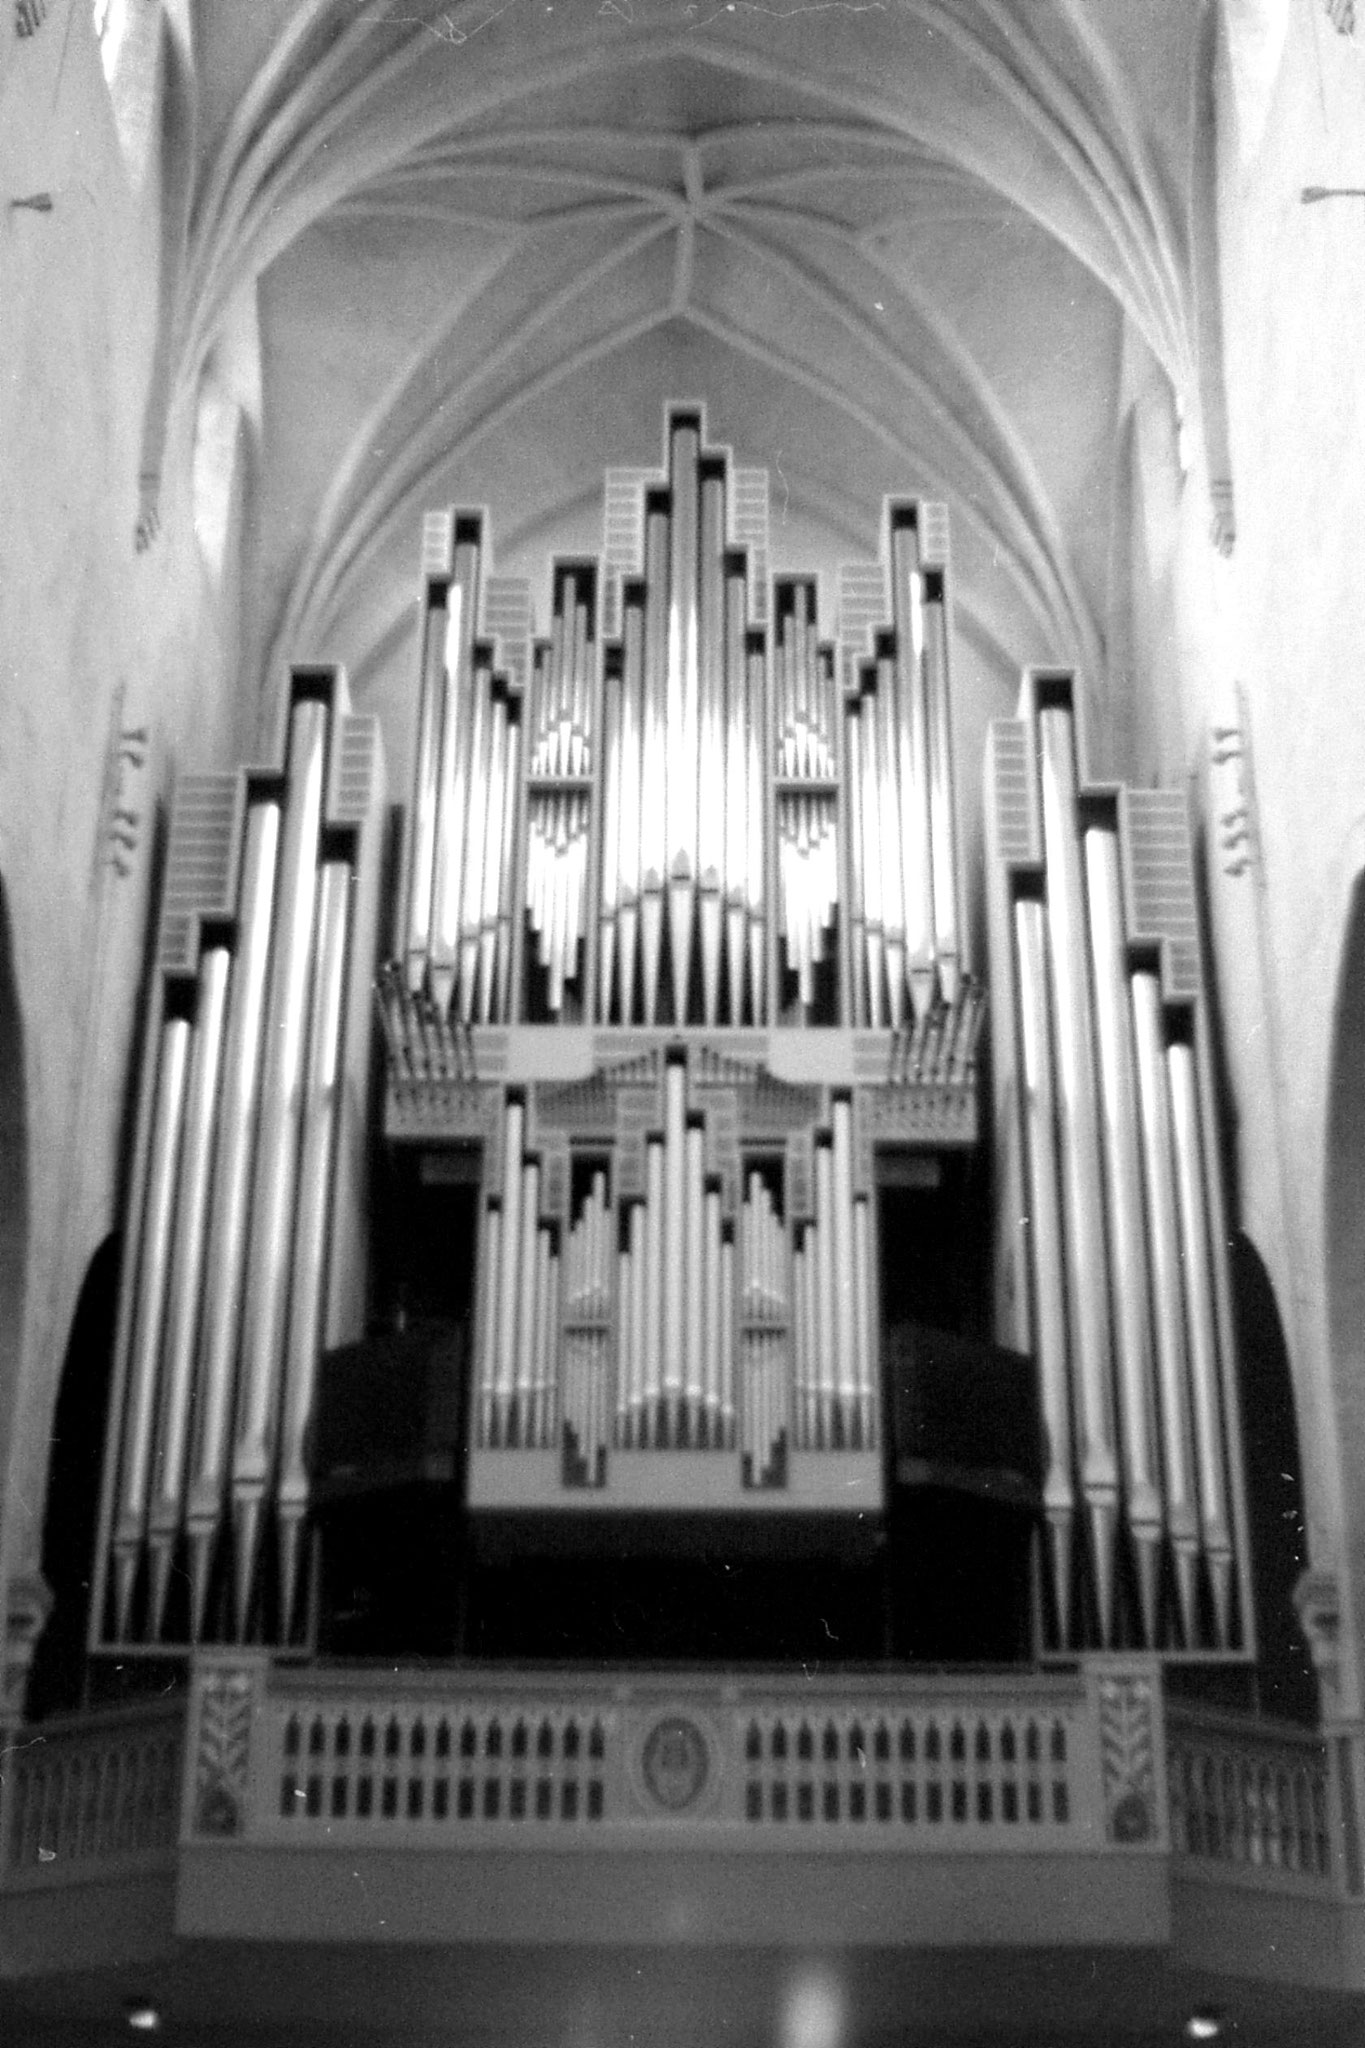 7/10/1988: 34: organ in Turkku cathedral